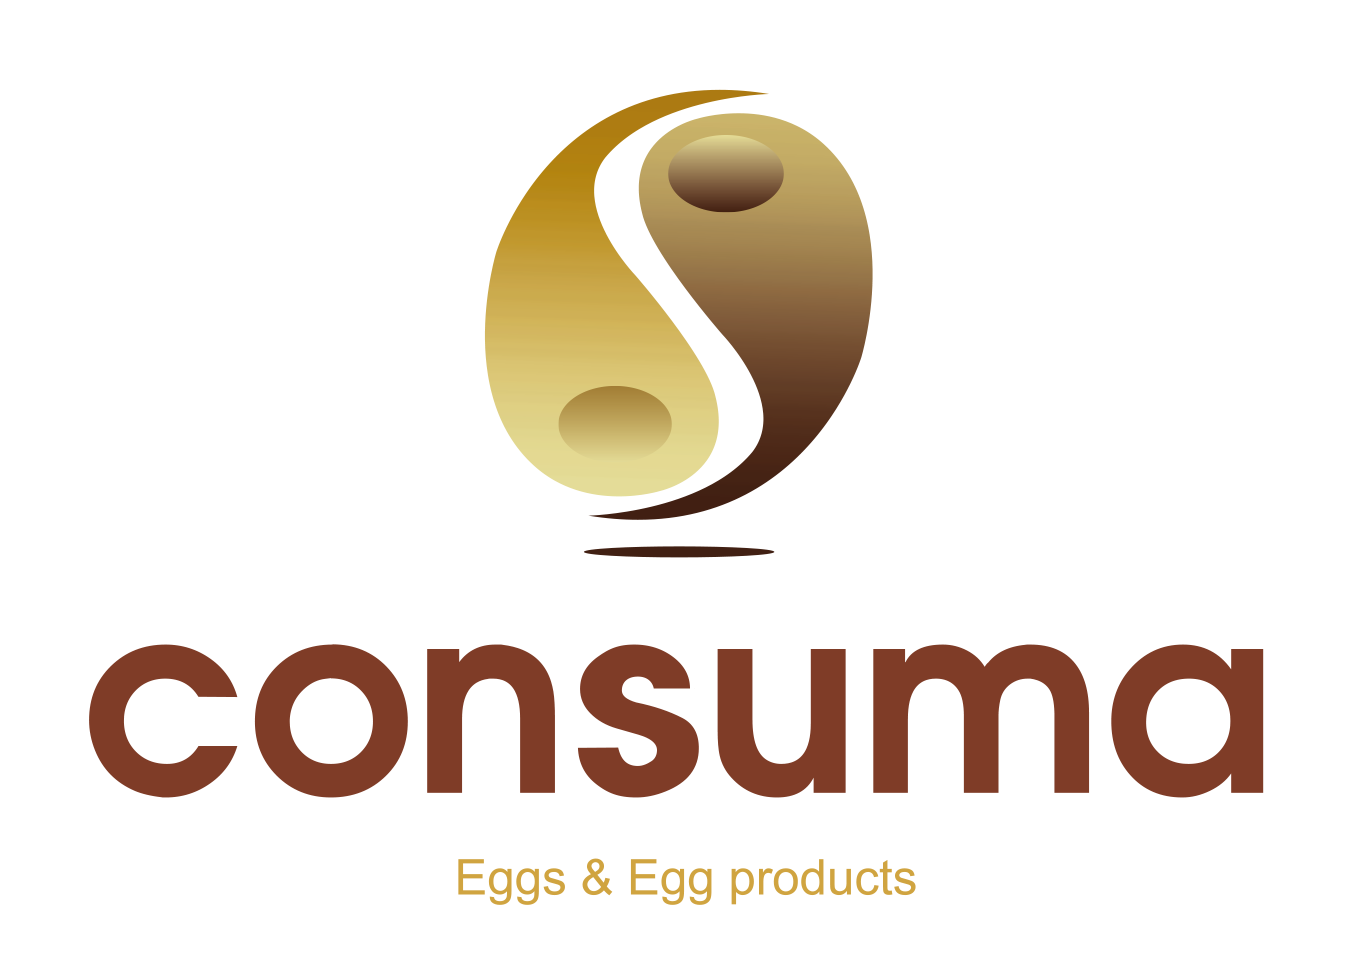 Consuma Egg Products